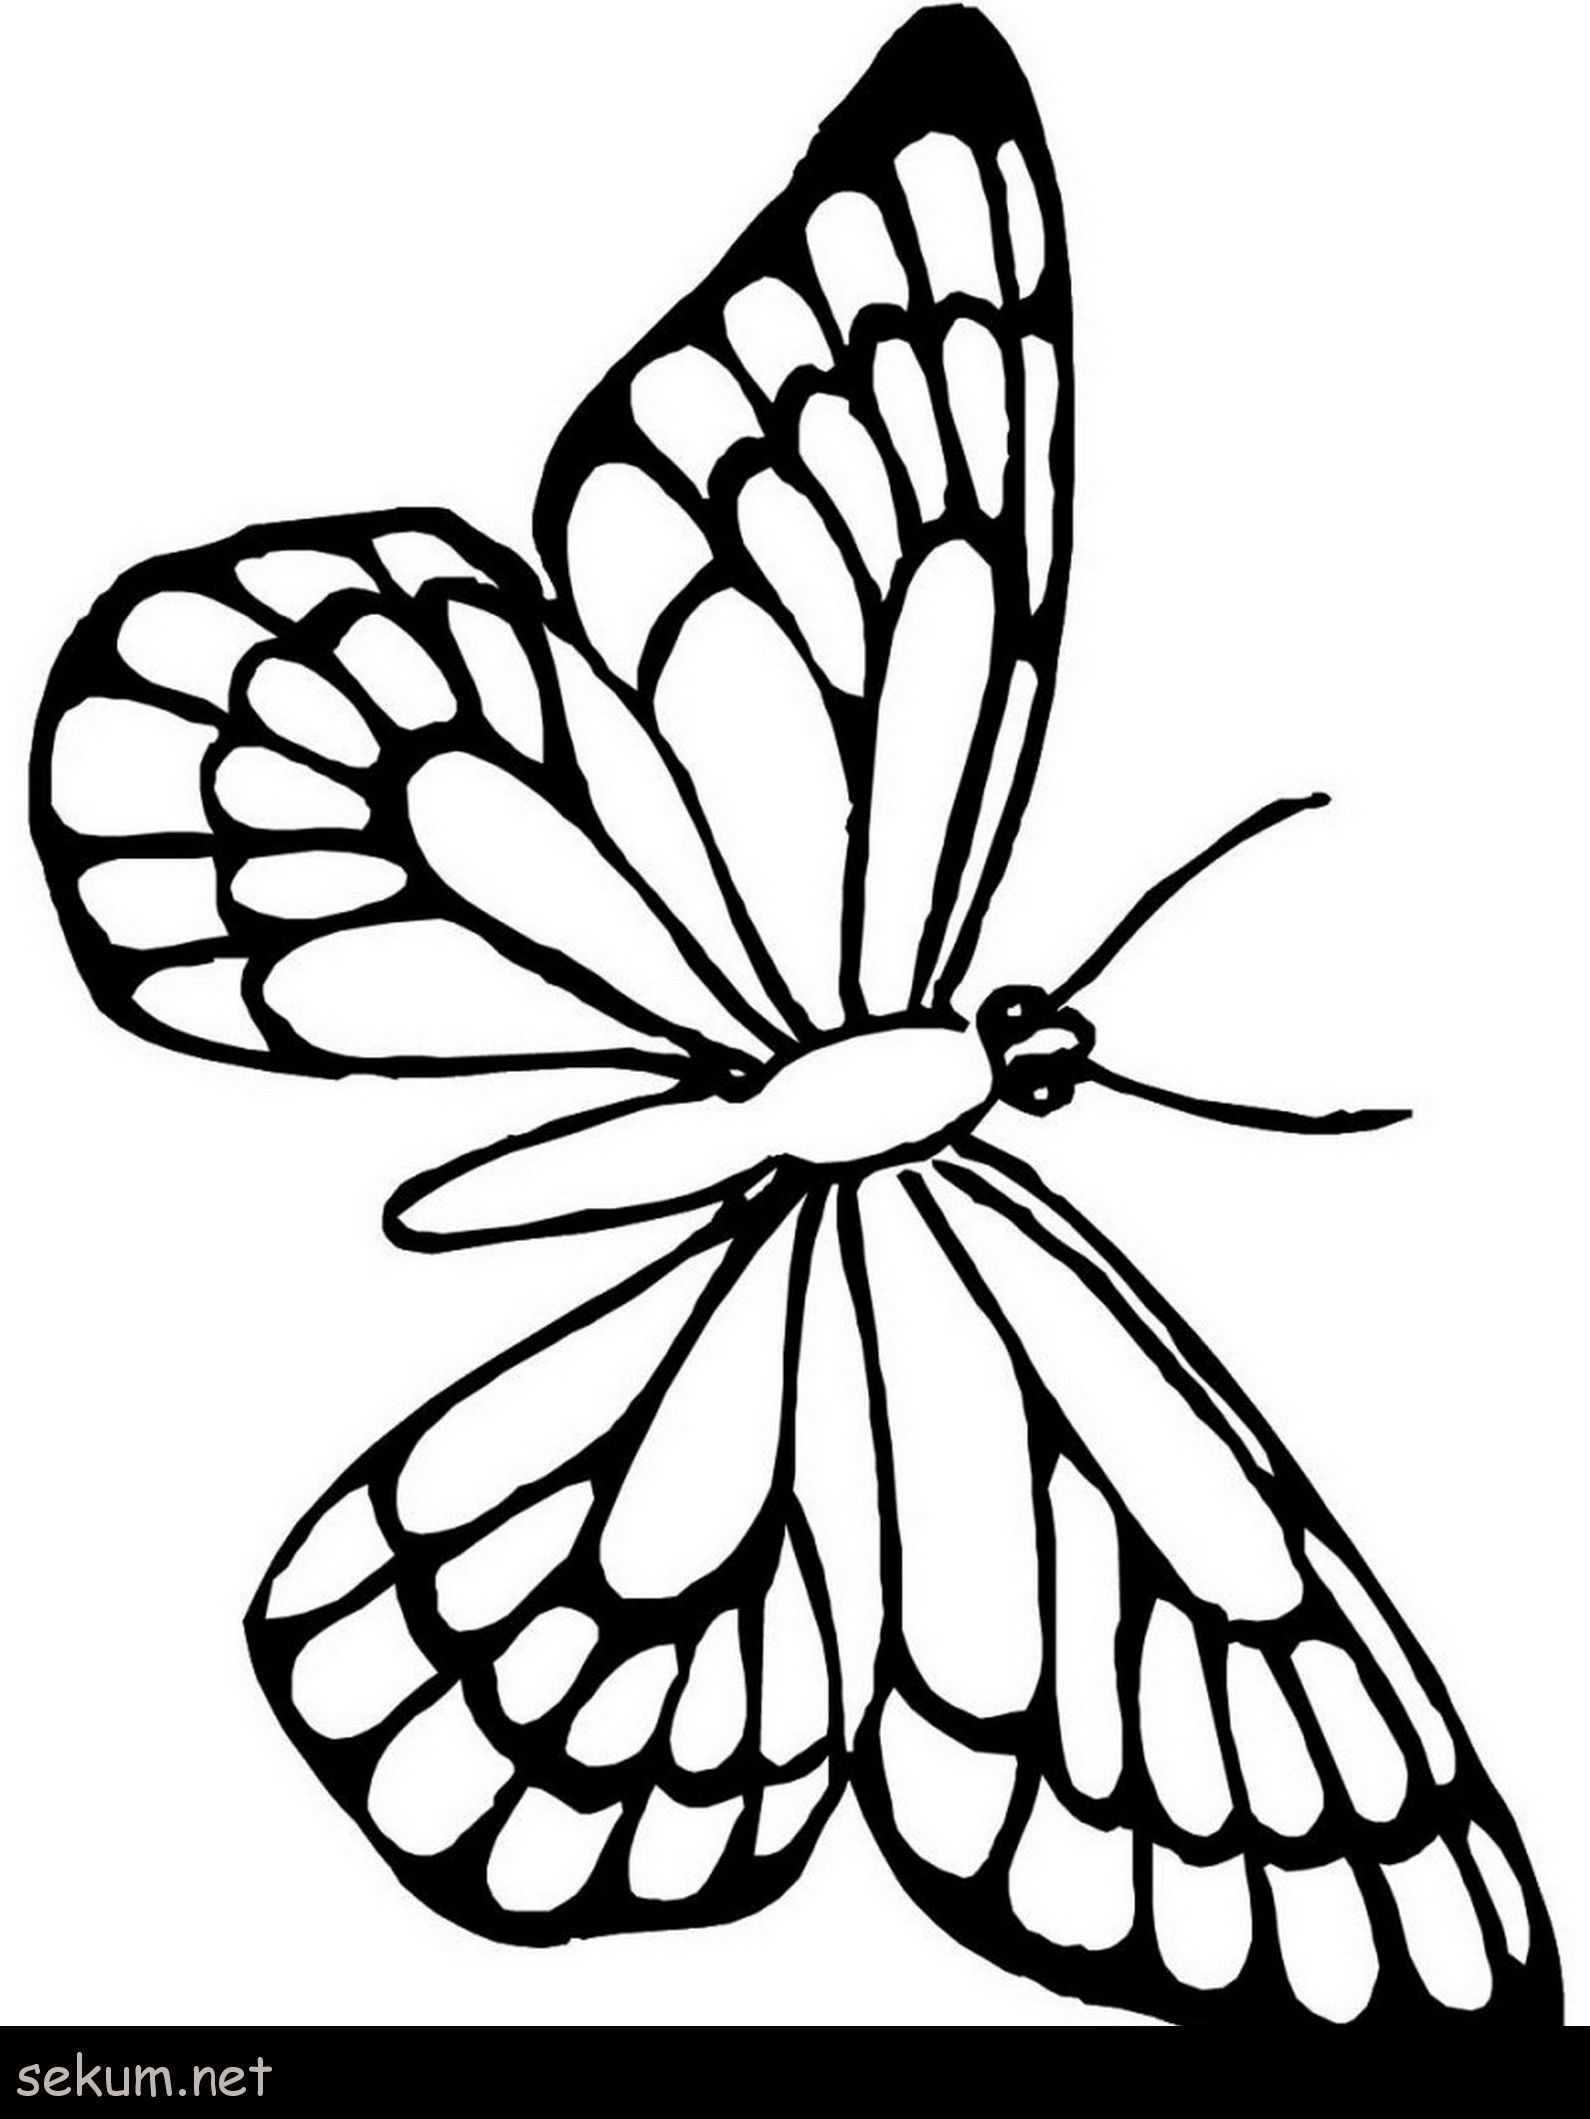 Butterfly Wing Coloring Page Youngandtae Com Butterfly Coloring Page Love Coloring Pages Butterfly Outline